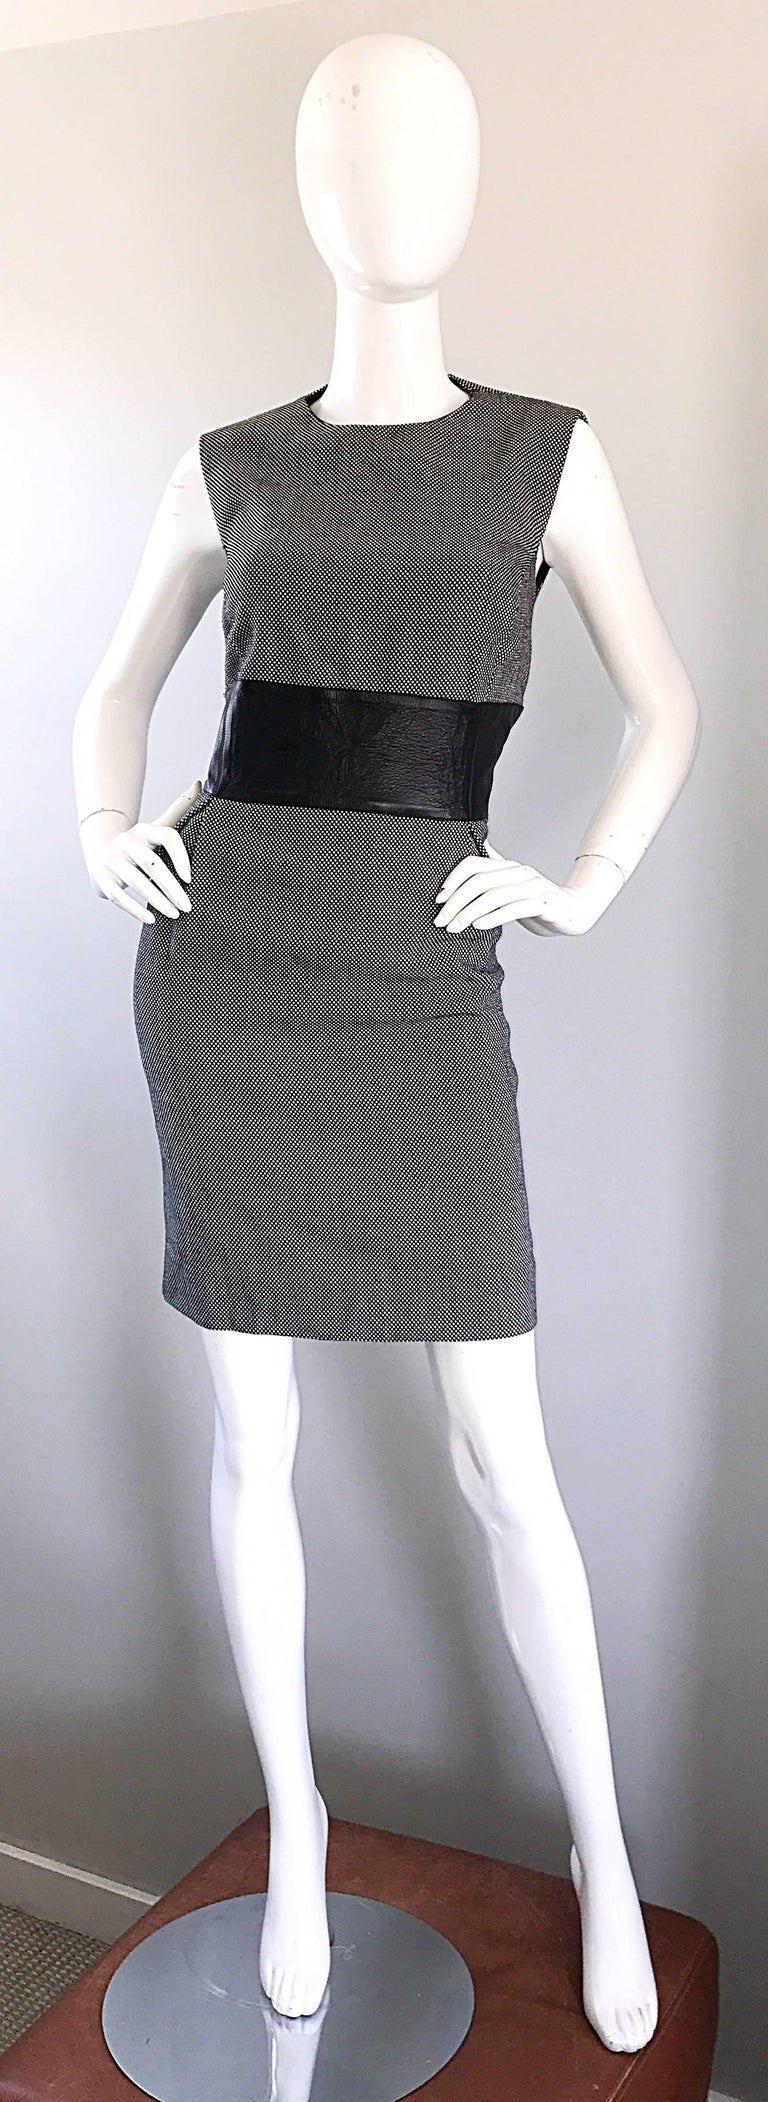 Brand new MICHAEL KORS COLLECTION black and white virgin wool and leather dress! Classic style that is very figure flattering. Soft lightweight black and white wool body, with a flattering wide blackl leather band across the front and back waist.